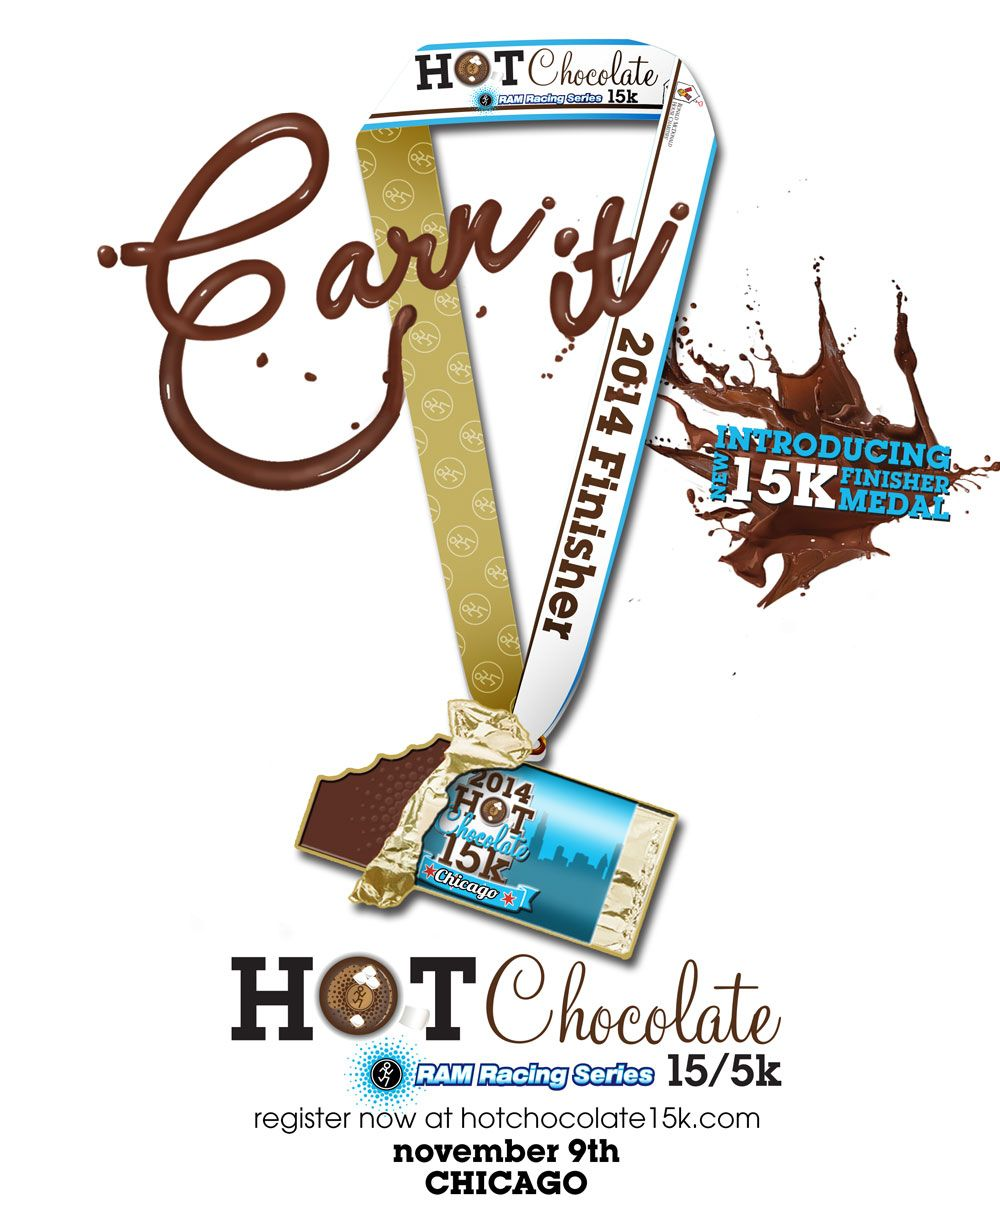 Hot Chocolate Chicago 15k Finisher Medal #running #chicago | Hot ...